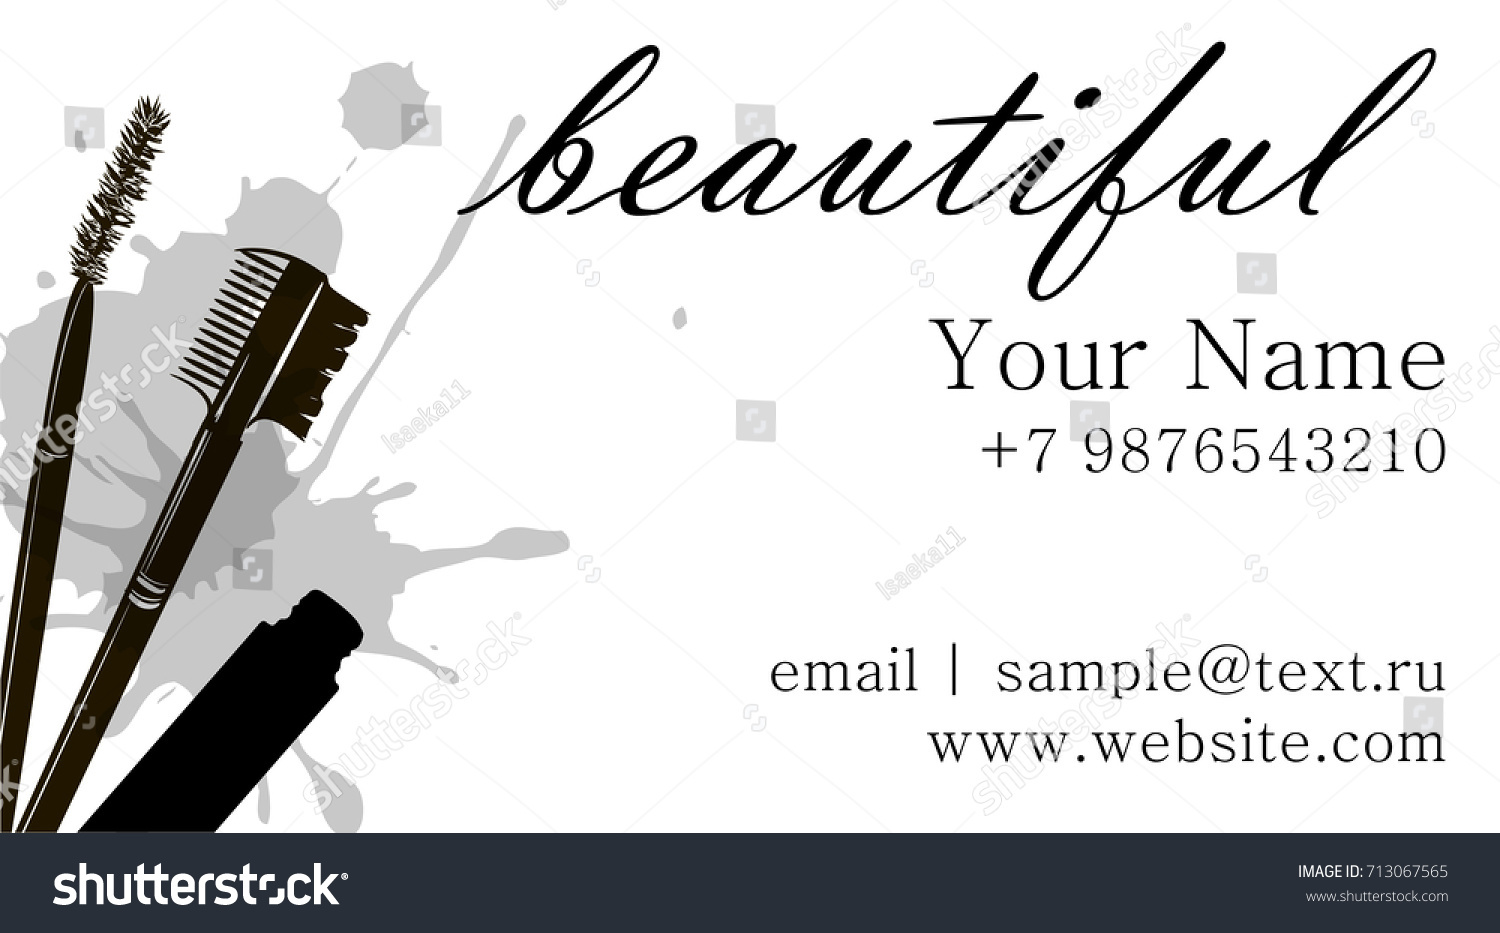 Makeup Artist Business Card Vector Template With Items Eyelash Brush Eyebrow